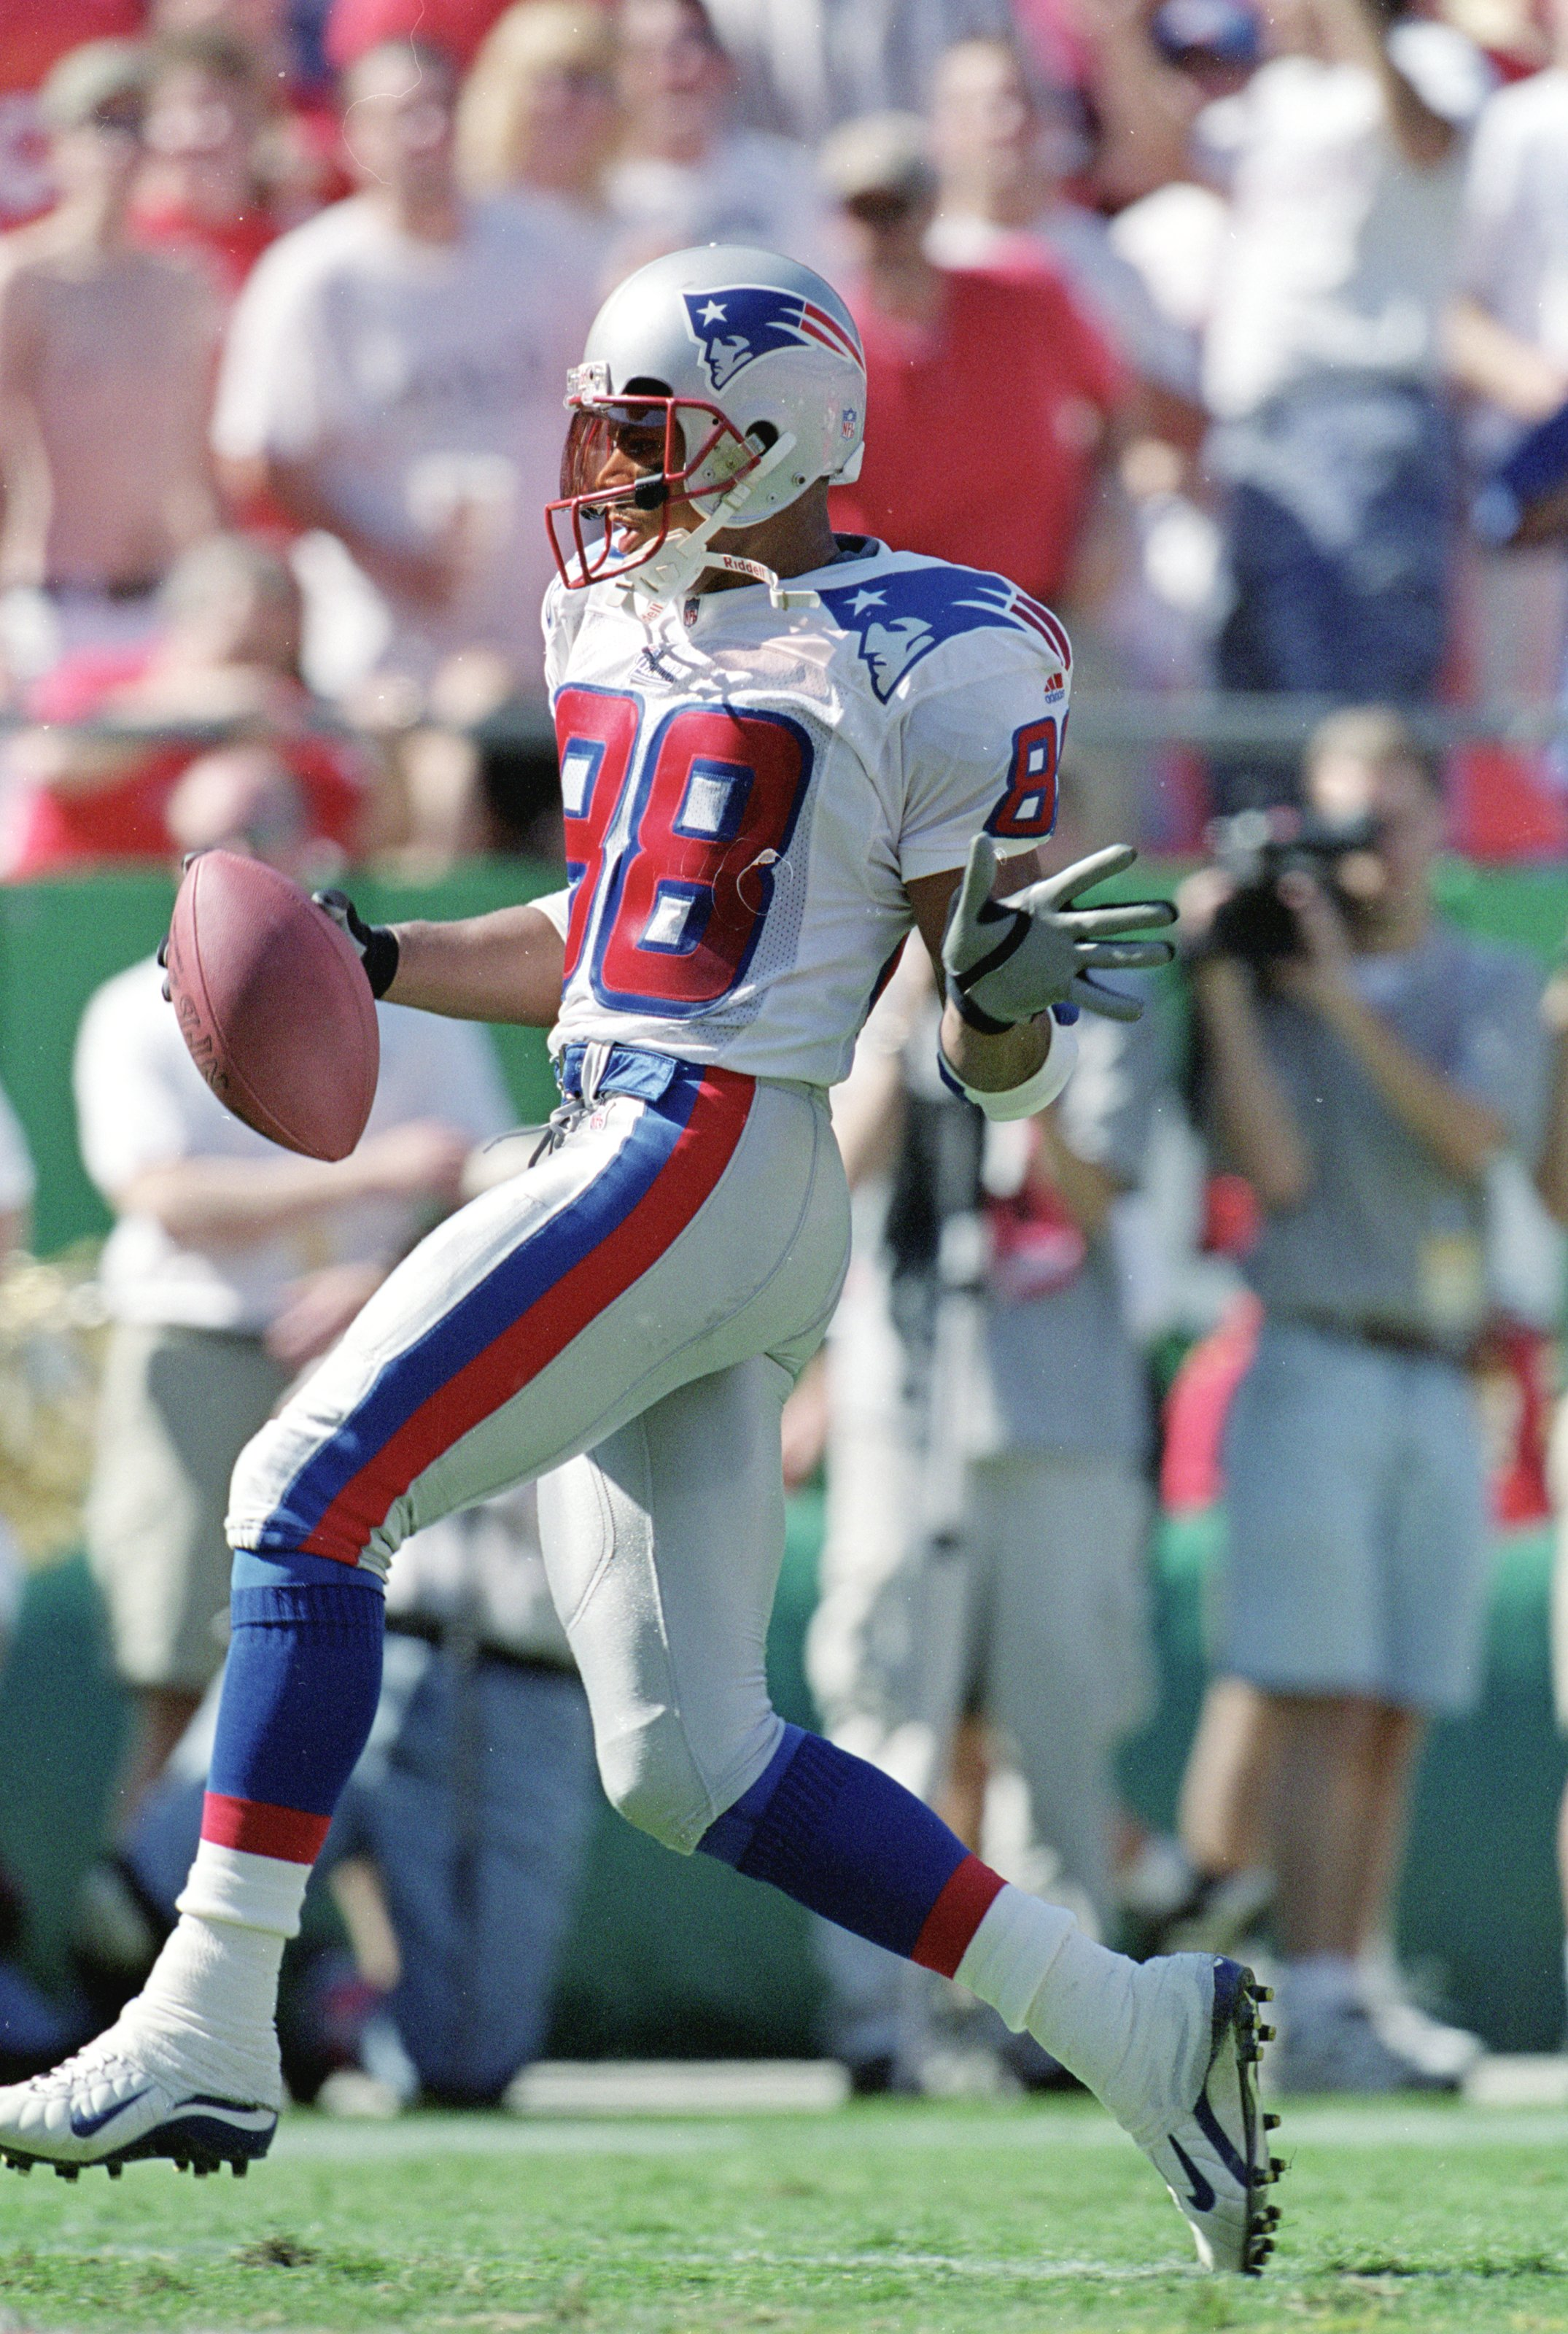 10 Oct 1999: Terry Glenn #88 of the New England Patriots carries  the ball for a touchdown during a game against the Kansas City Chiefs at Arrowhead Stadium in Kansas City, Missouri. The Chiefs defeated the Patriots 16-14. Mandatory Credit: Brian Bahr  /A